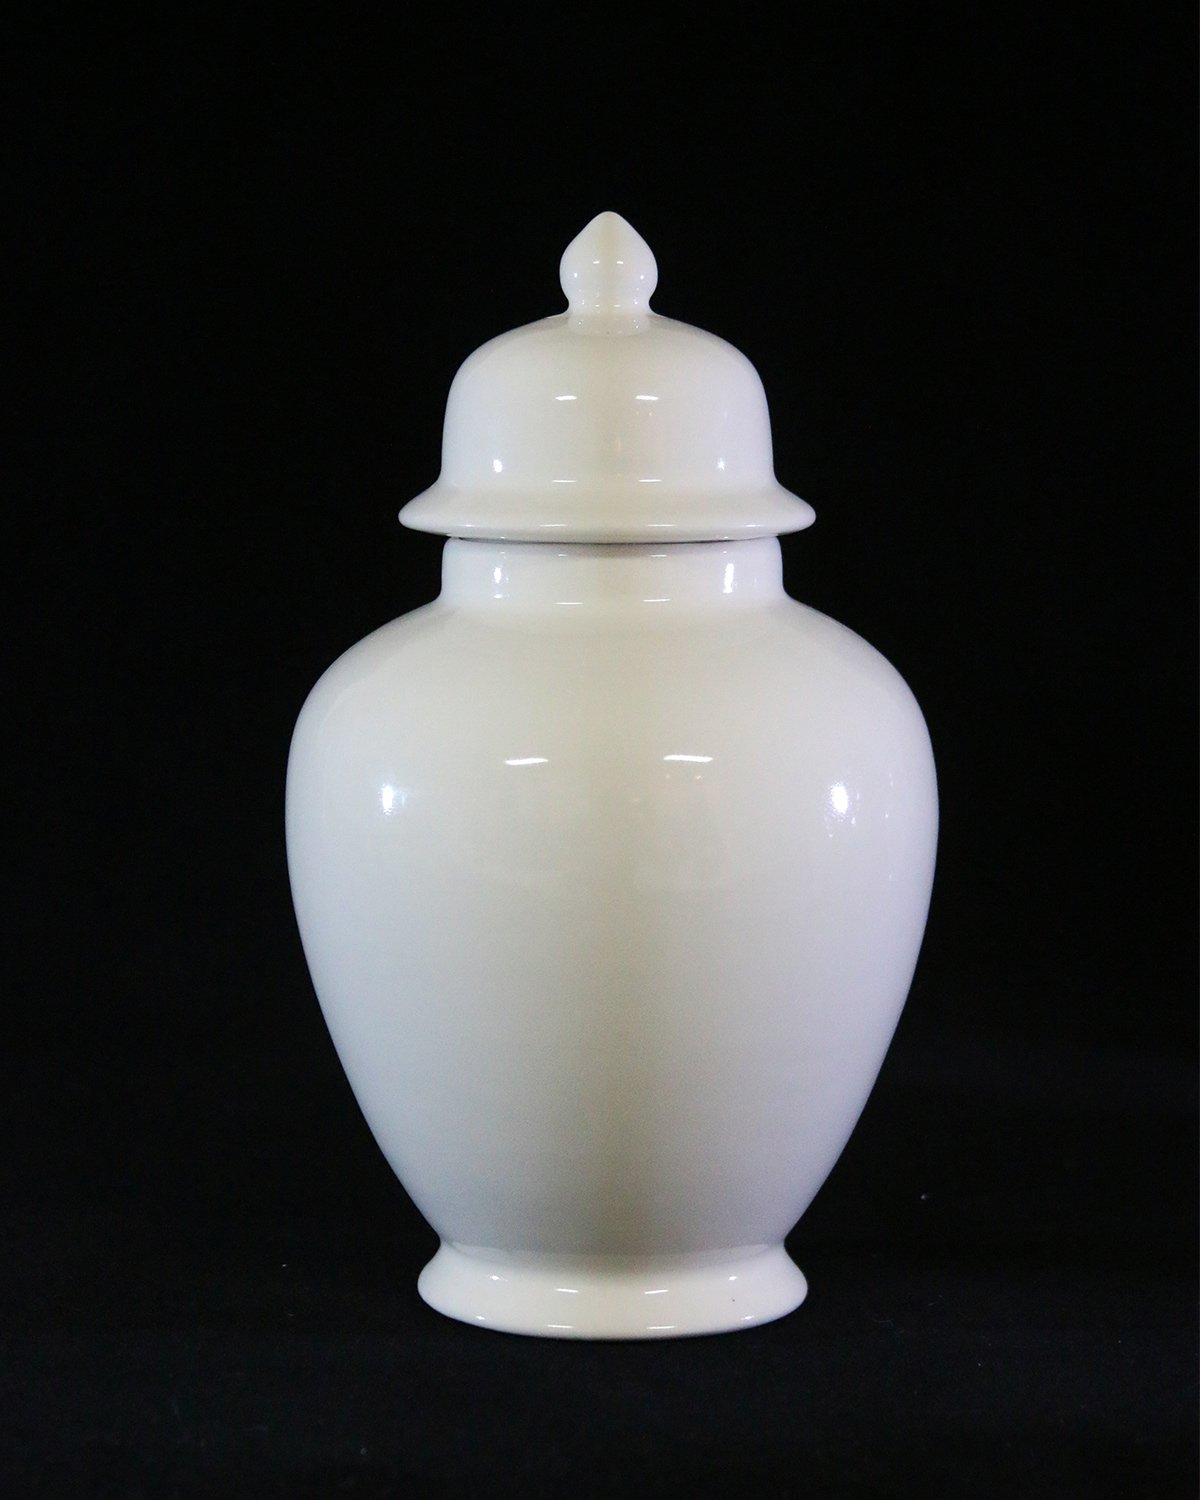 Handcrafted Ceramic Urn - Ivory -113 cu in - Various Colors and Sizes Available, Cremation Urn for Ashes, Pet Urn